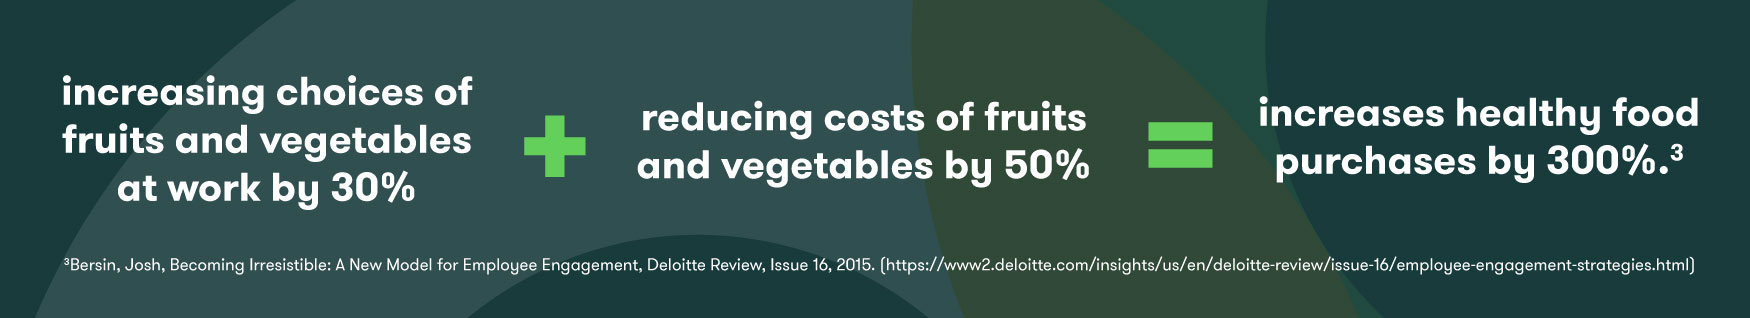 increases-healthy-food-purchases-by-300pcnt